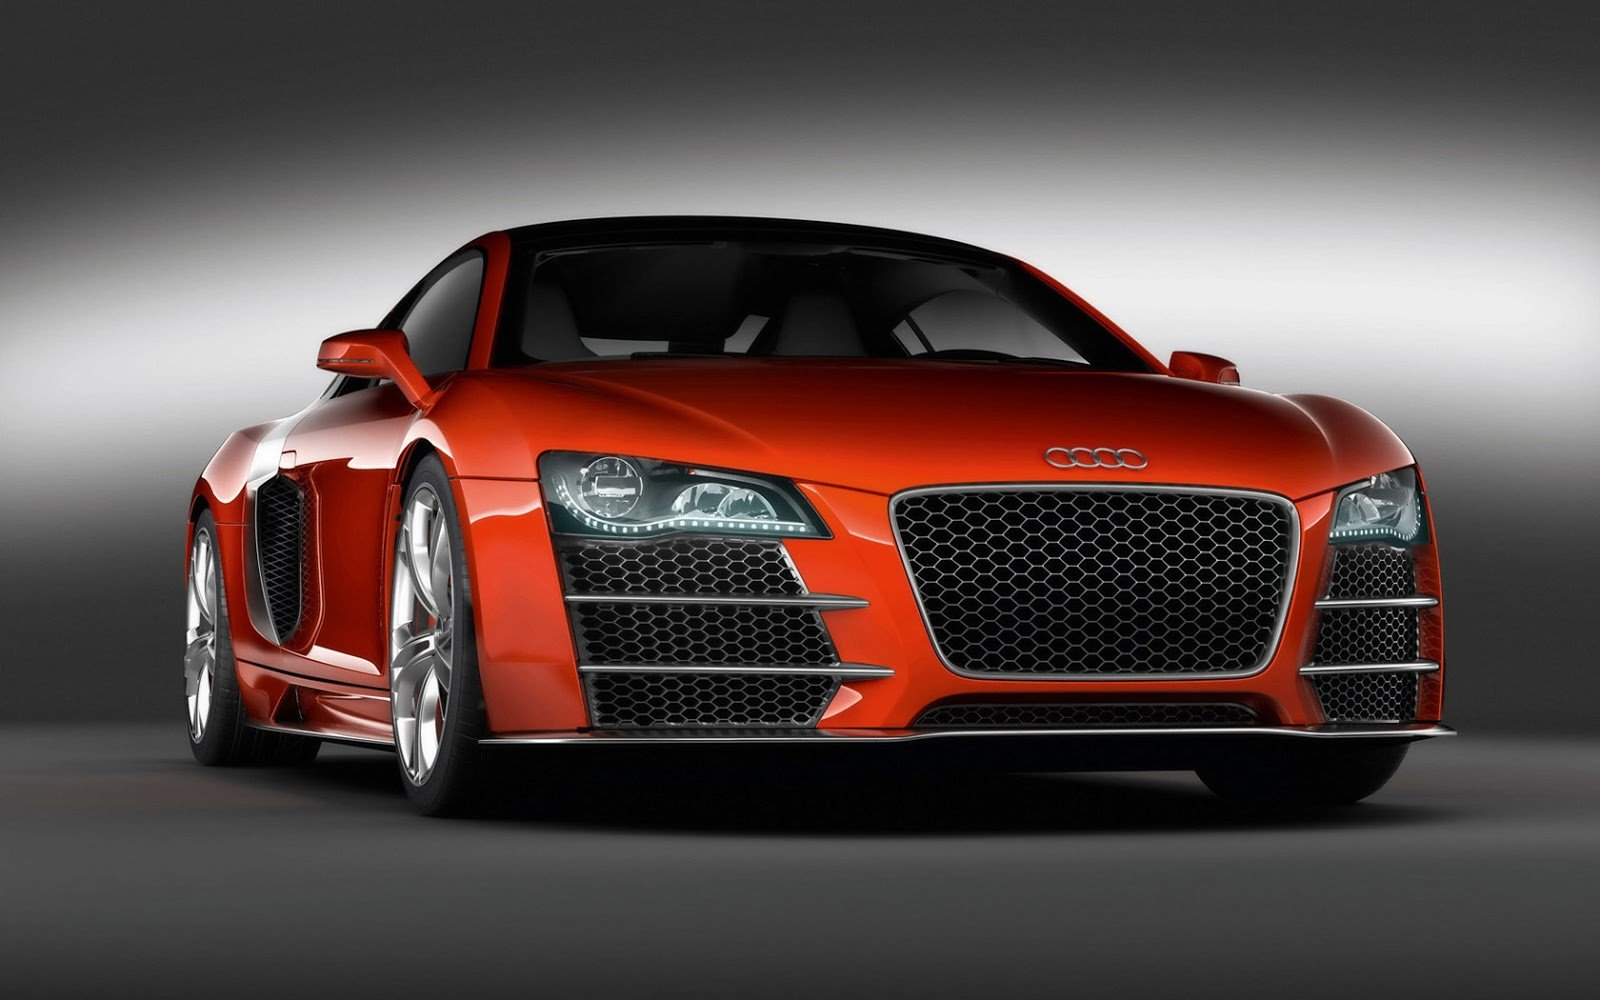 Latest Audi Car Wallpapers Nice Wallpapers Free Download